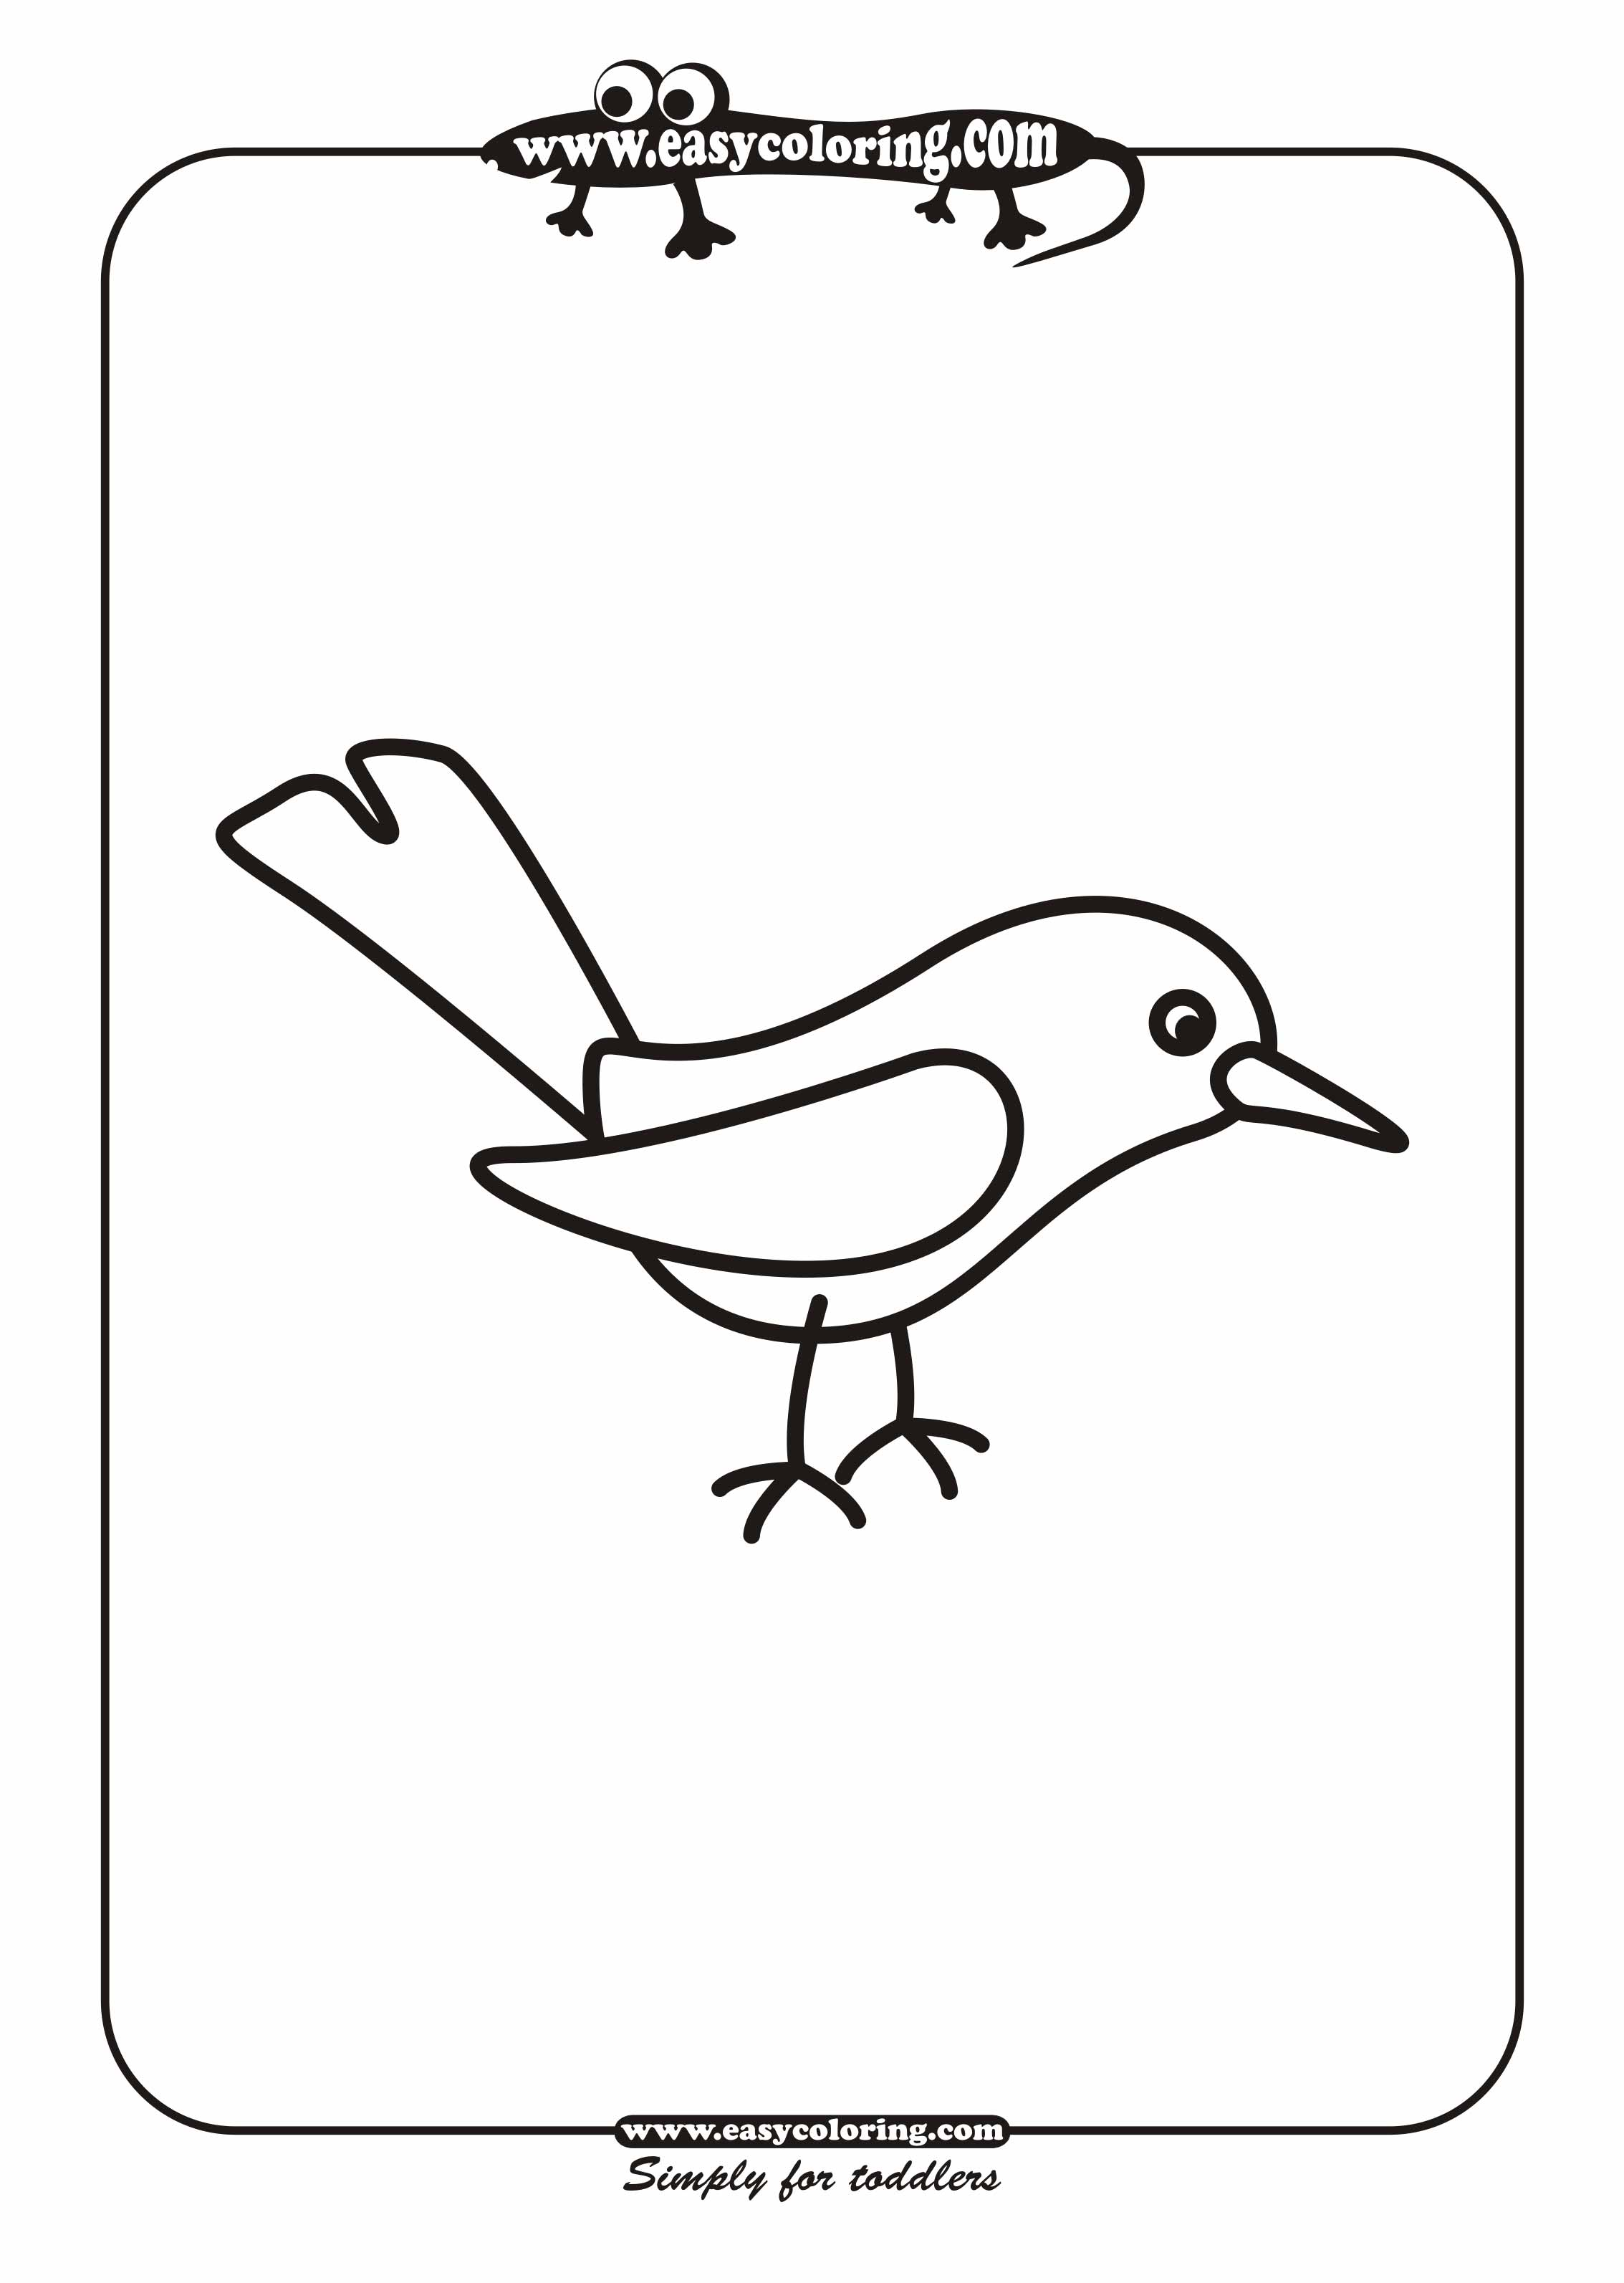 Simple Alphabet Coloring Pages For Toddlers Simple Best